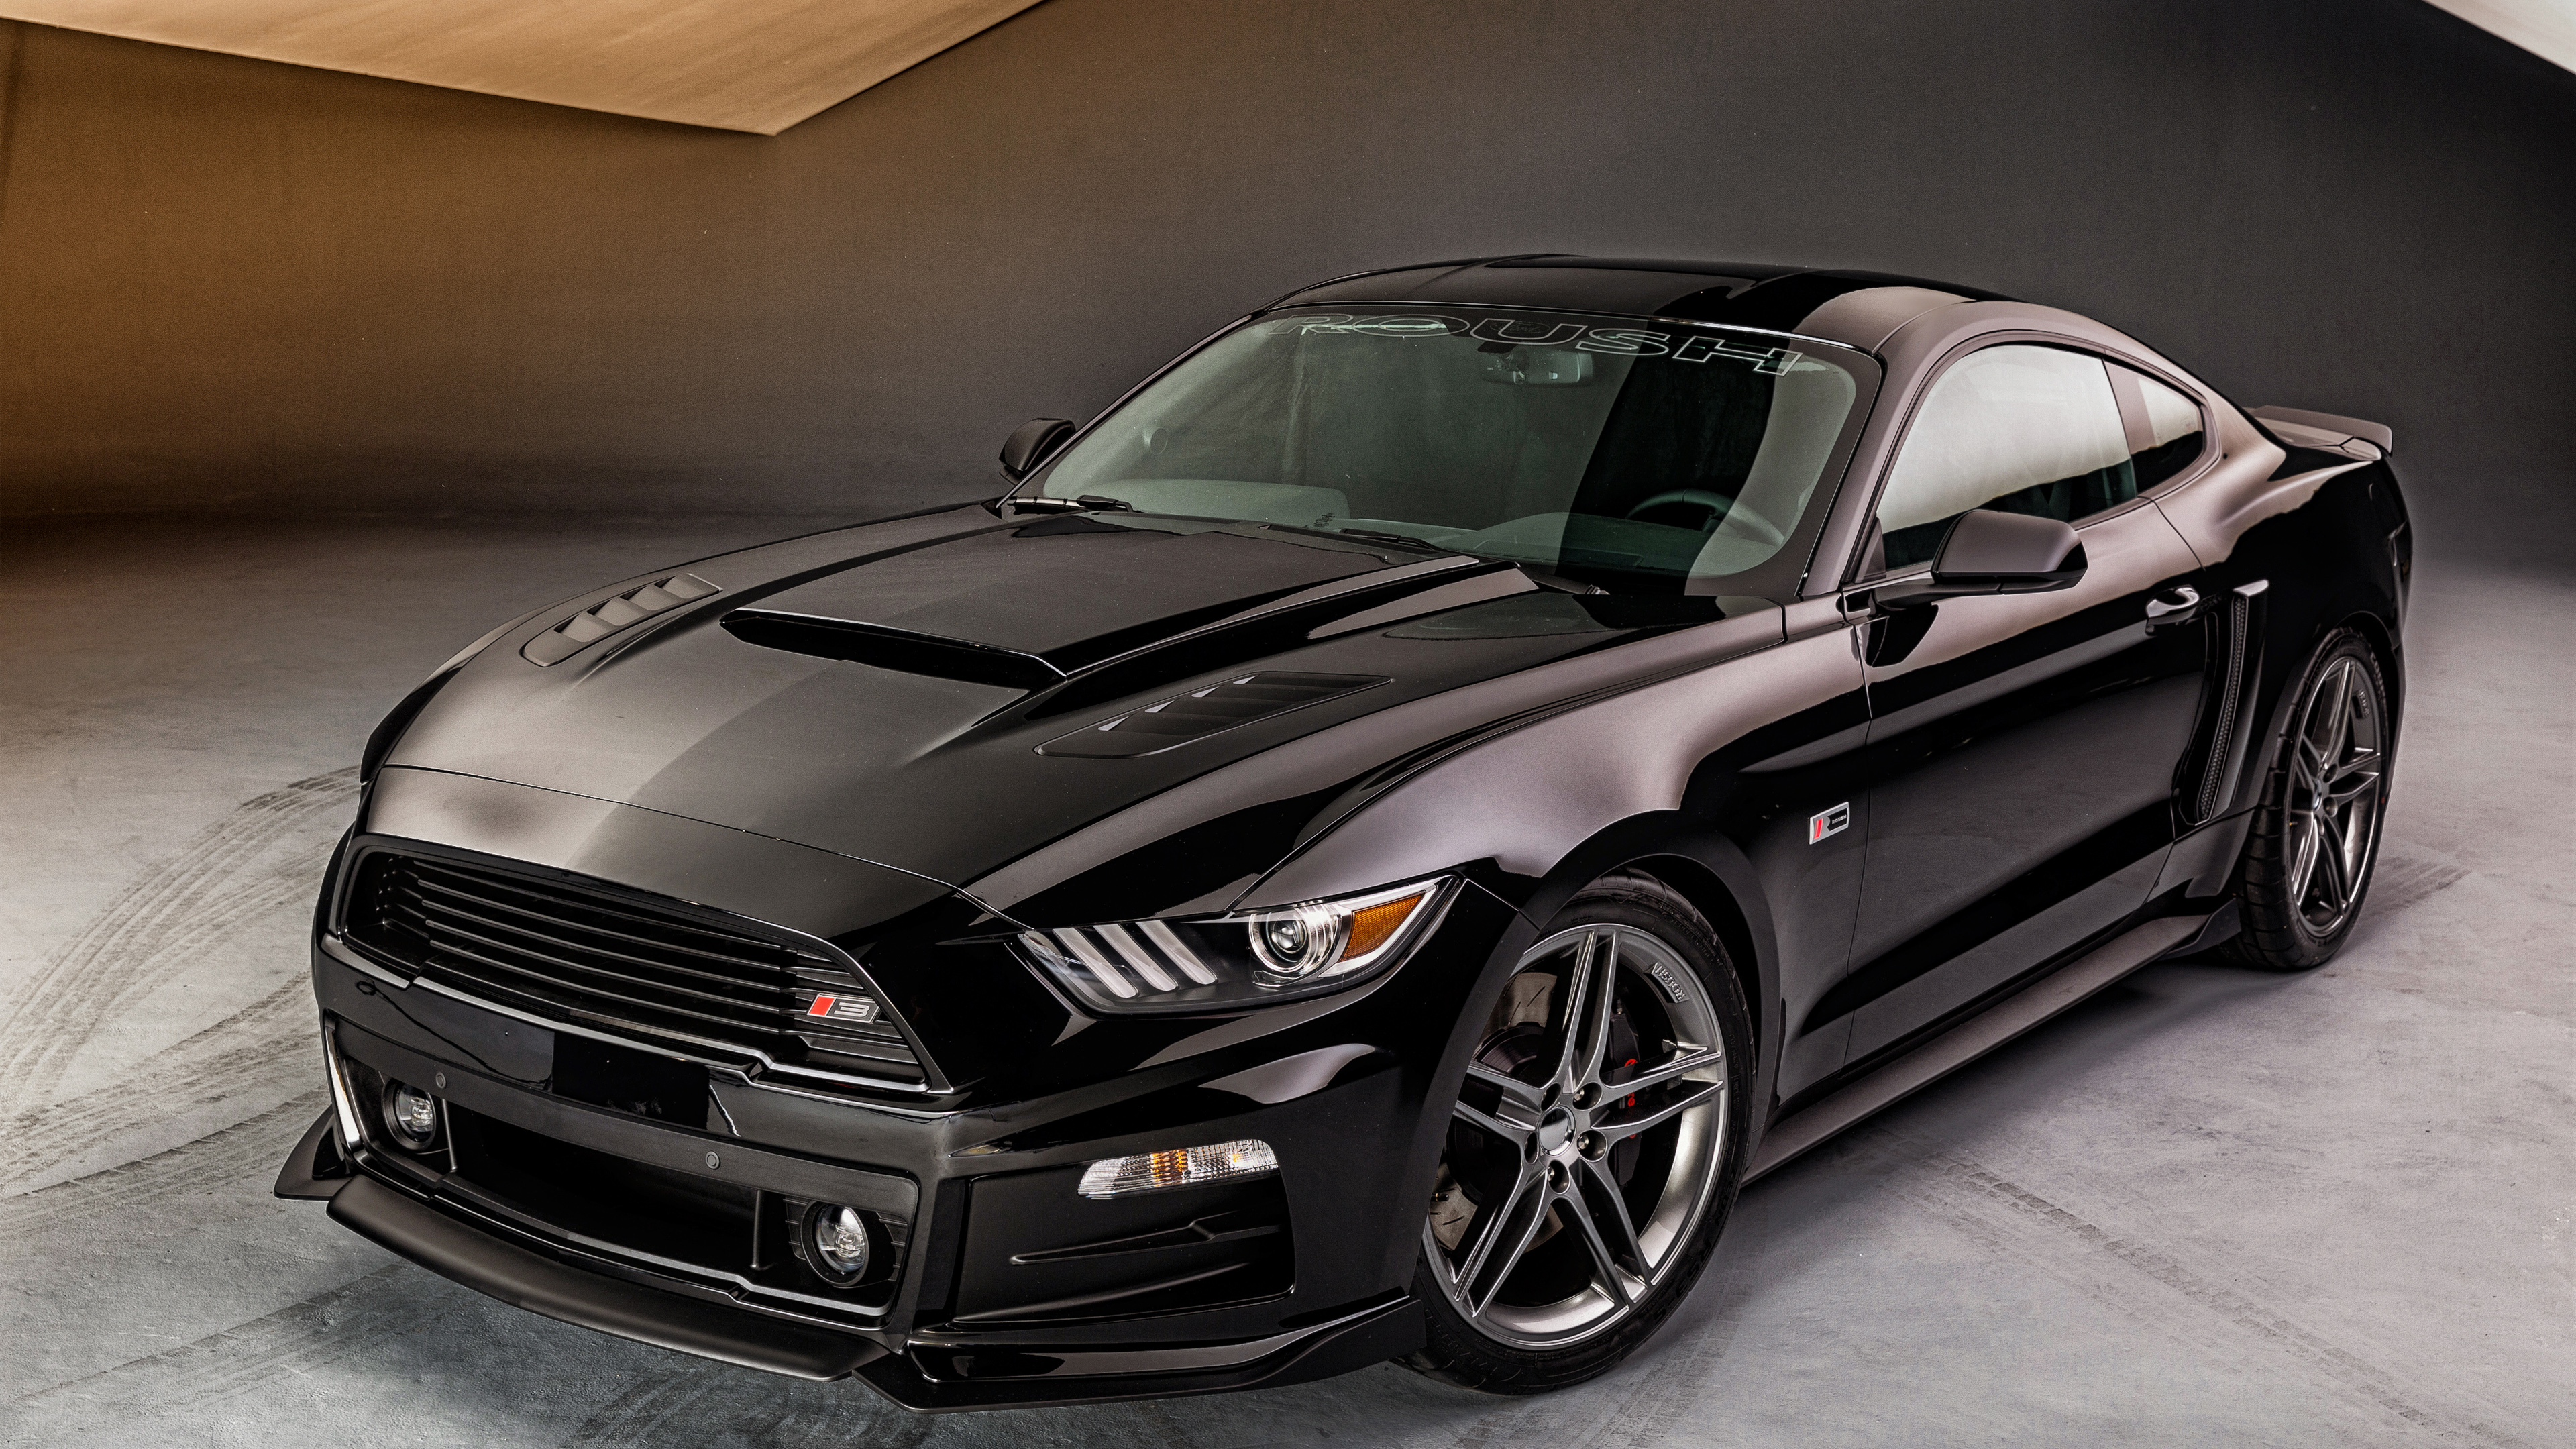 2015 roush ford mustang rs wallpaper hd car wallpapers id 5711. Black Bedroom Furniture Sets. Home Design Ideas